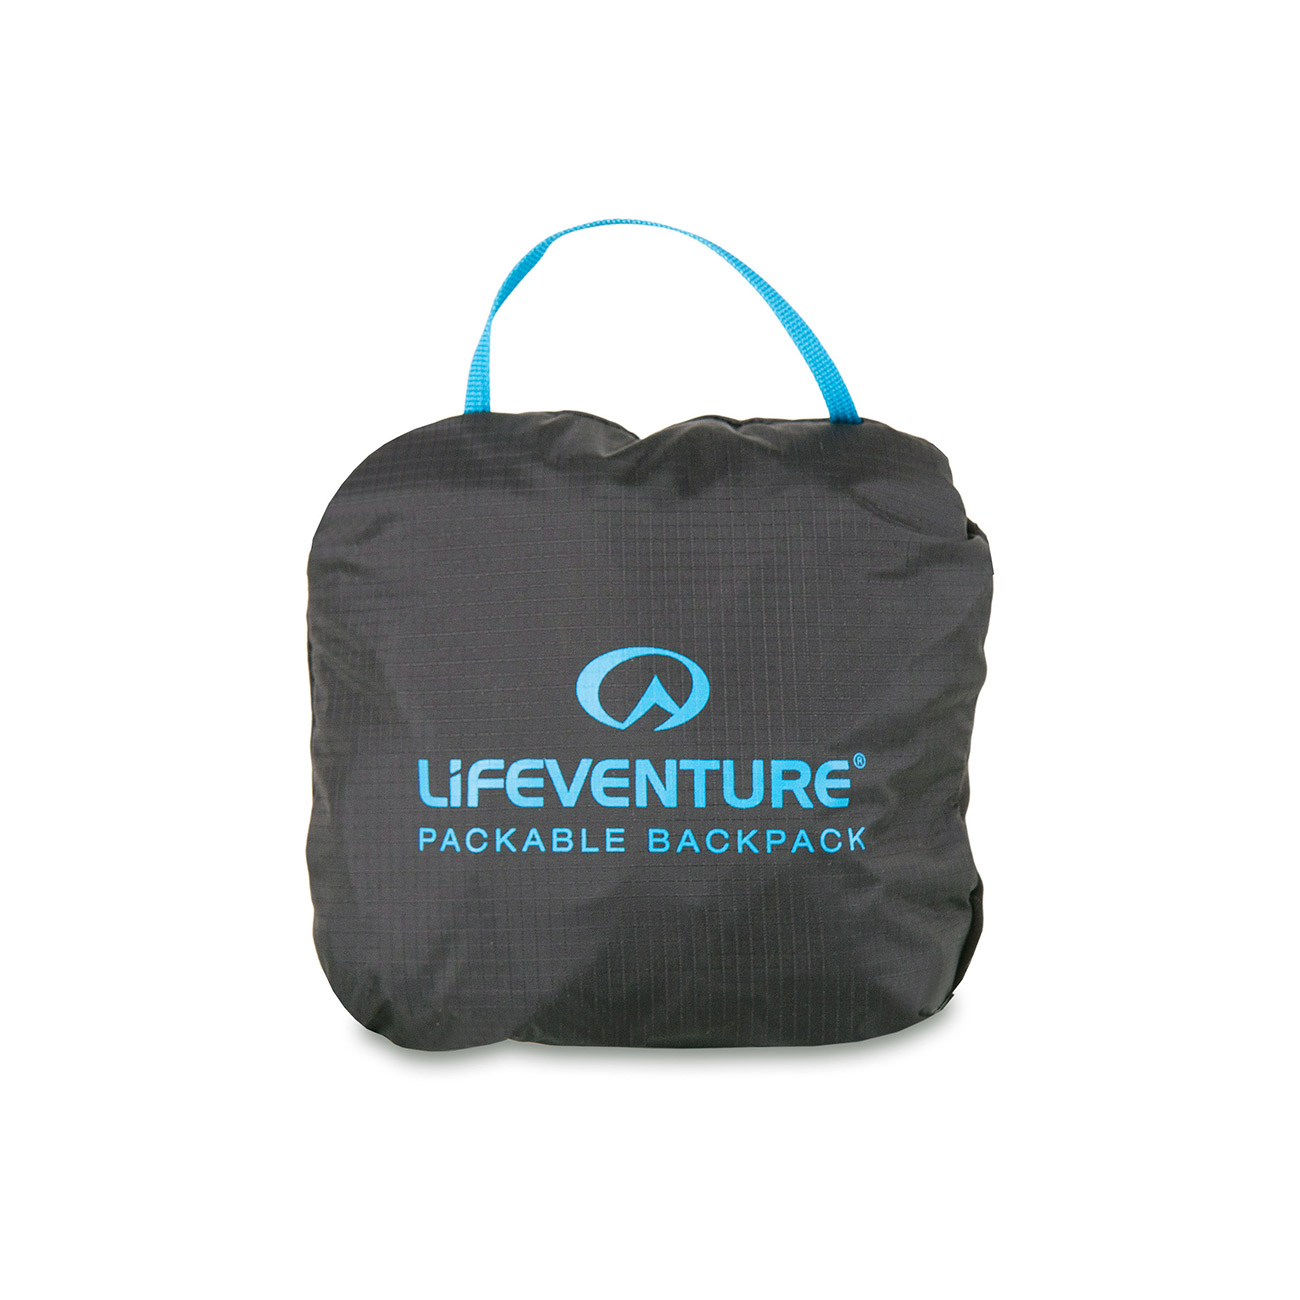 Lifeventure Rucksack Packable Backpack 16 Liter schwarz 2